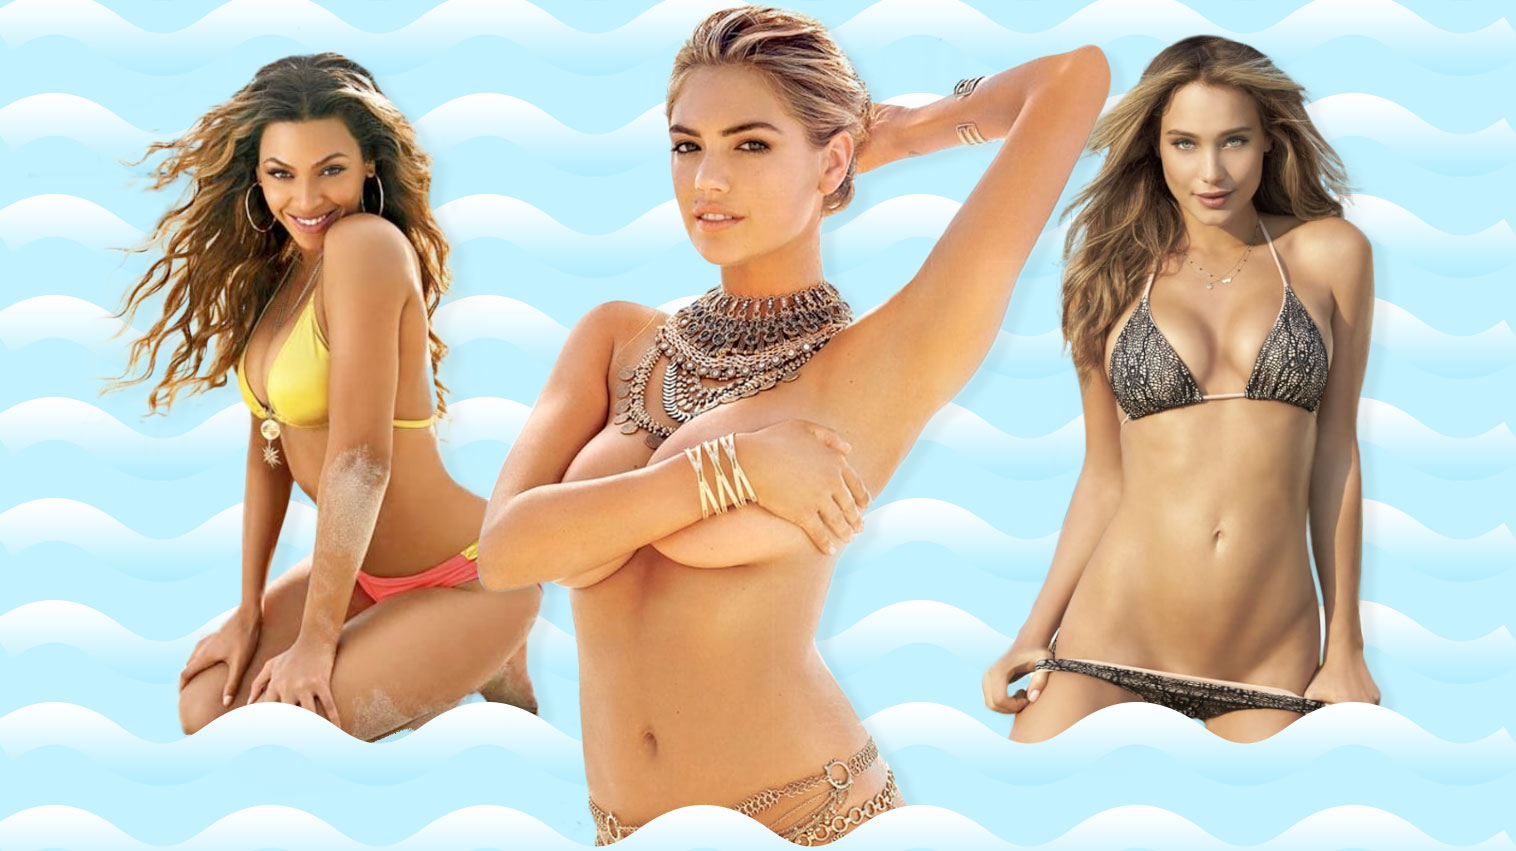 d01f2a28de9aa 'Sports Illustrated Swimsuit' Issue Covers Through the Years